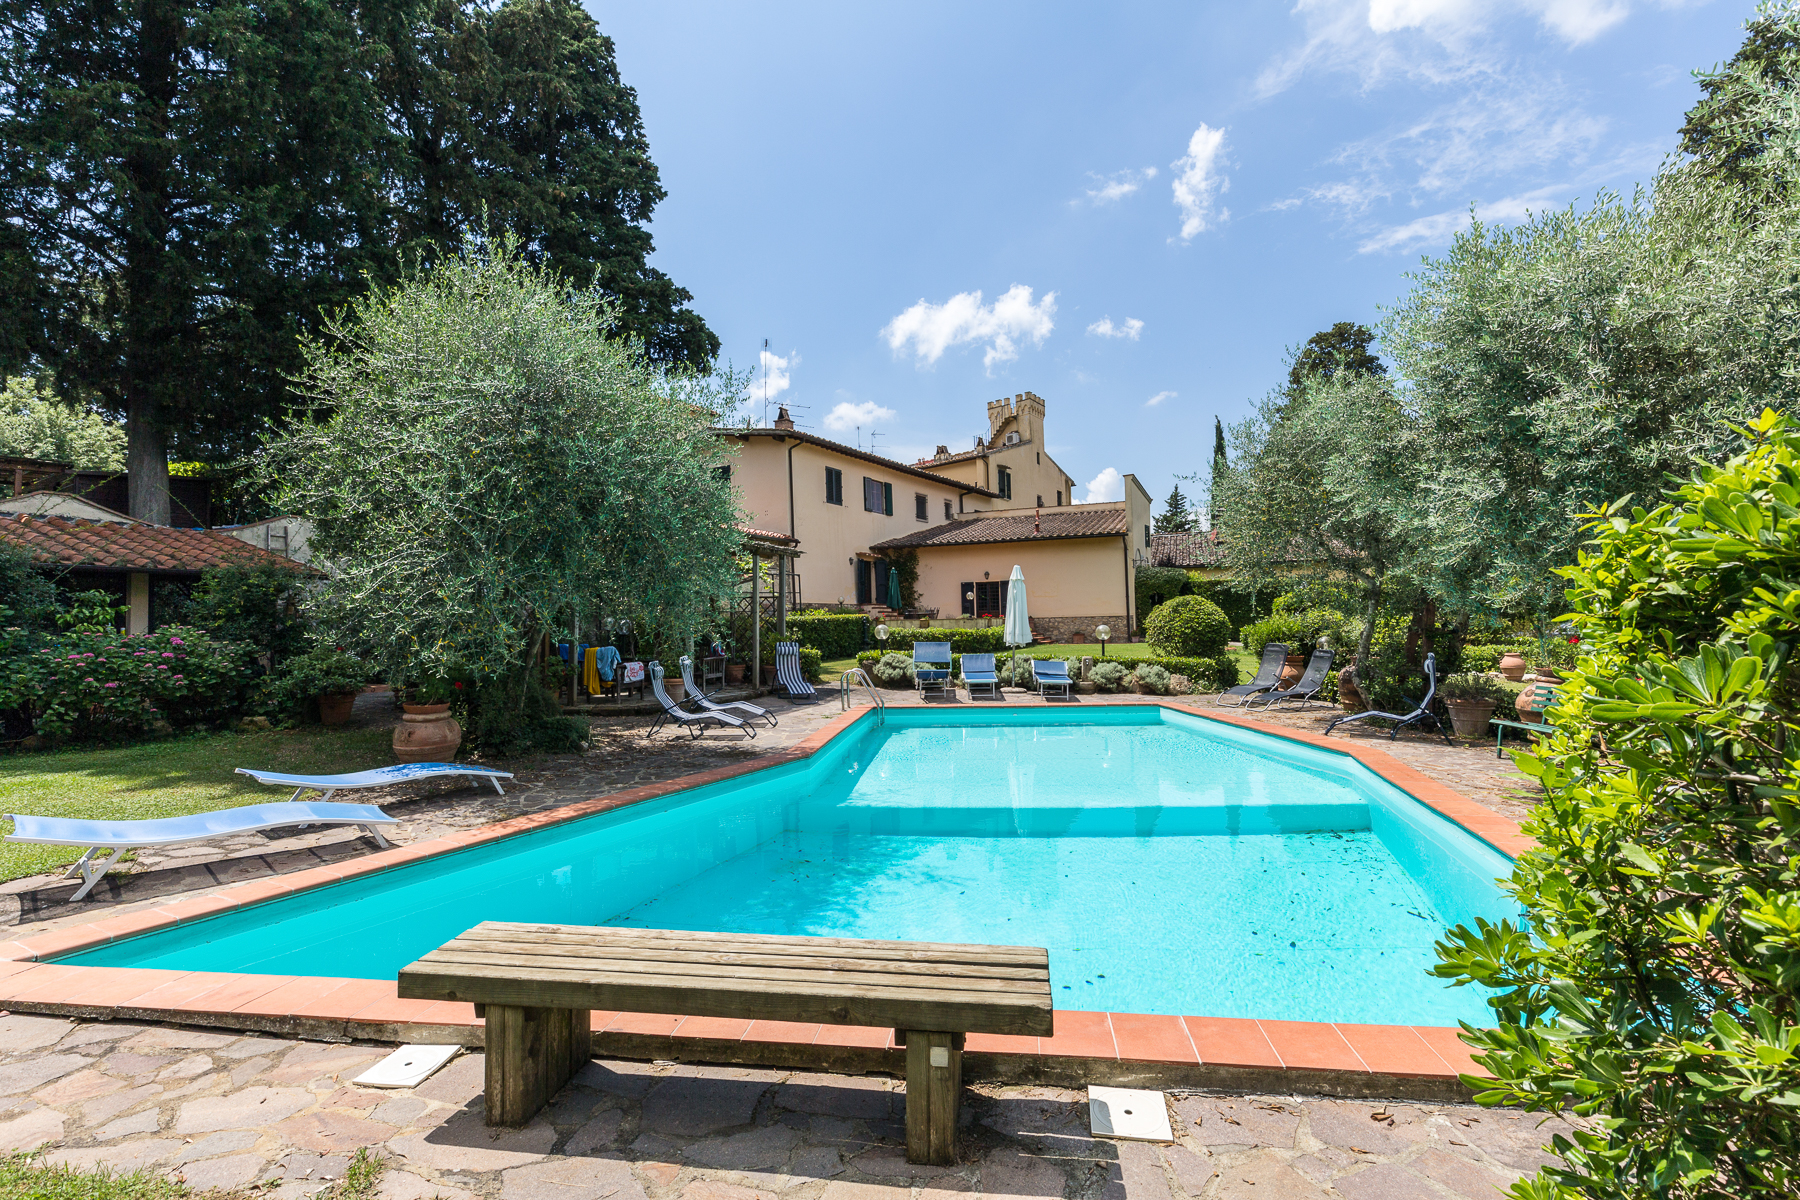 Single Family Home for Sale at Charming property near Florence Bagno A Ripoli, Italy